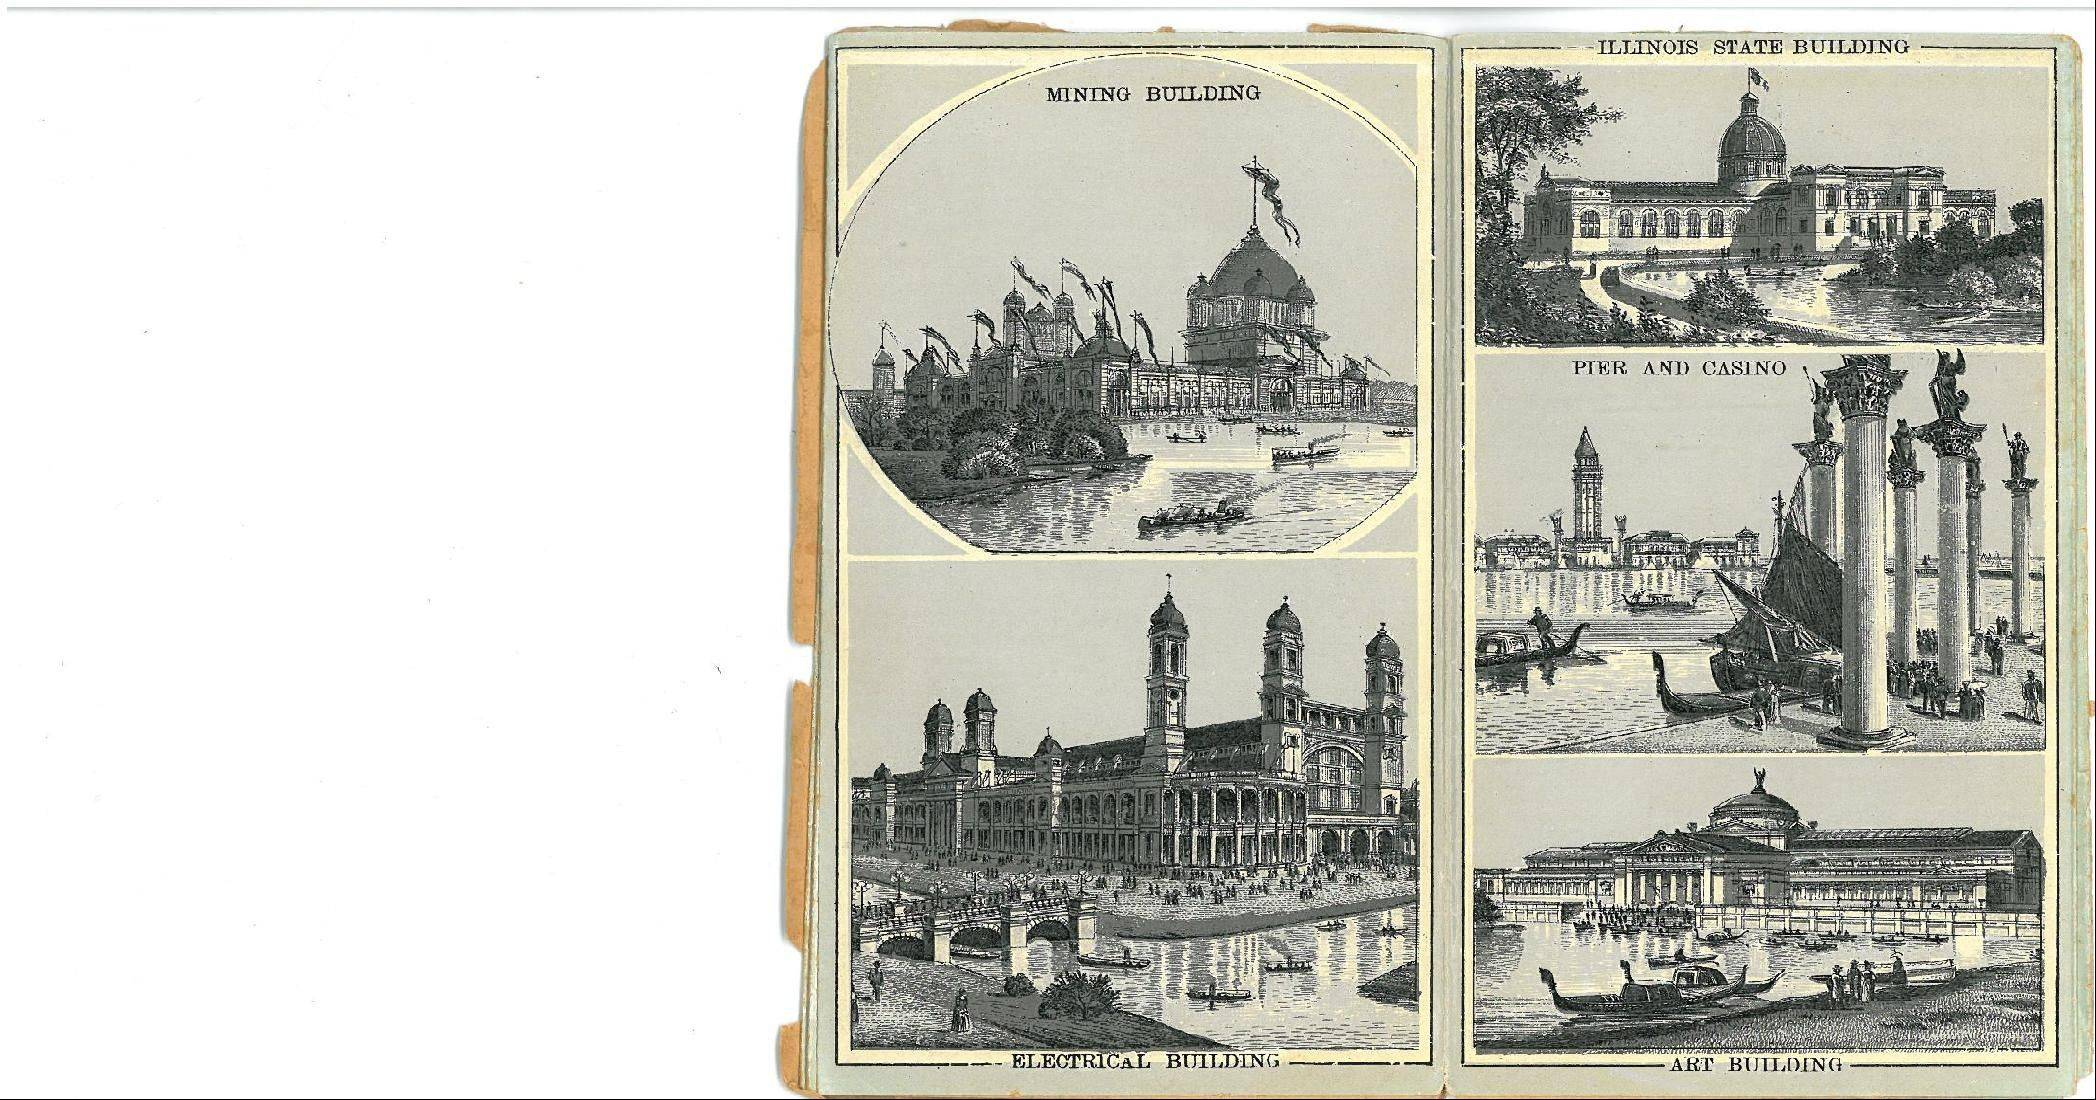 Buildings at the 1893 World's Columbian Exposition.